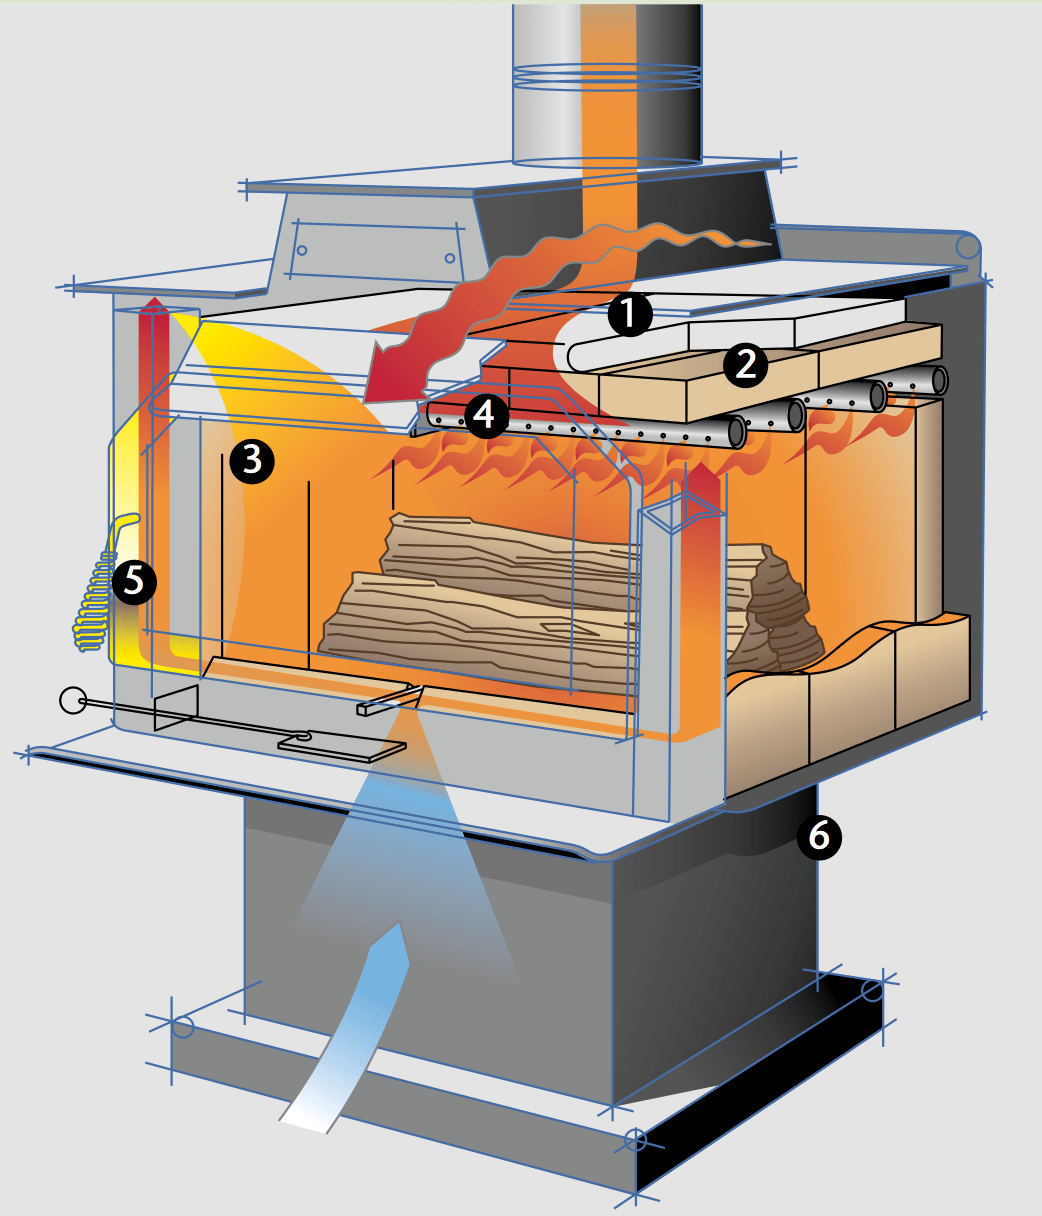 hight resolution of wood furnace schematic printable wiring diagram wood furnace schematic